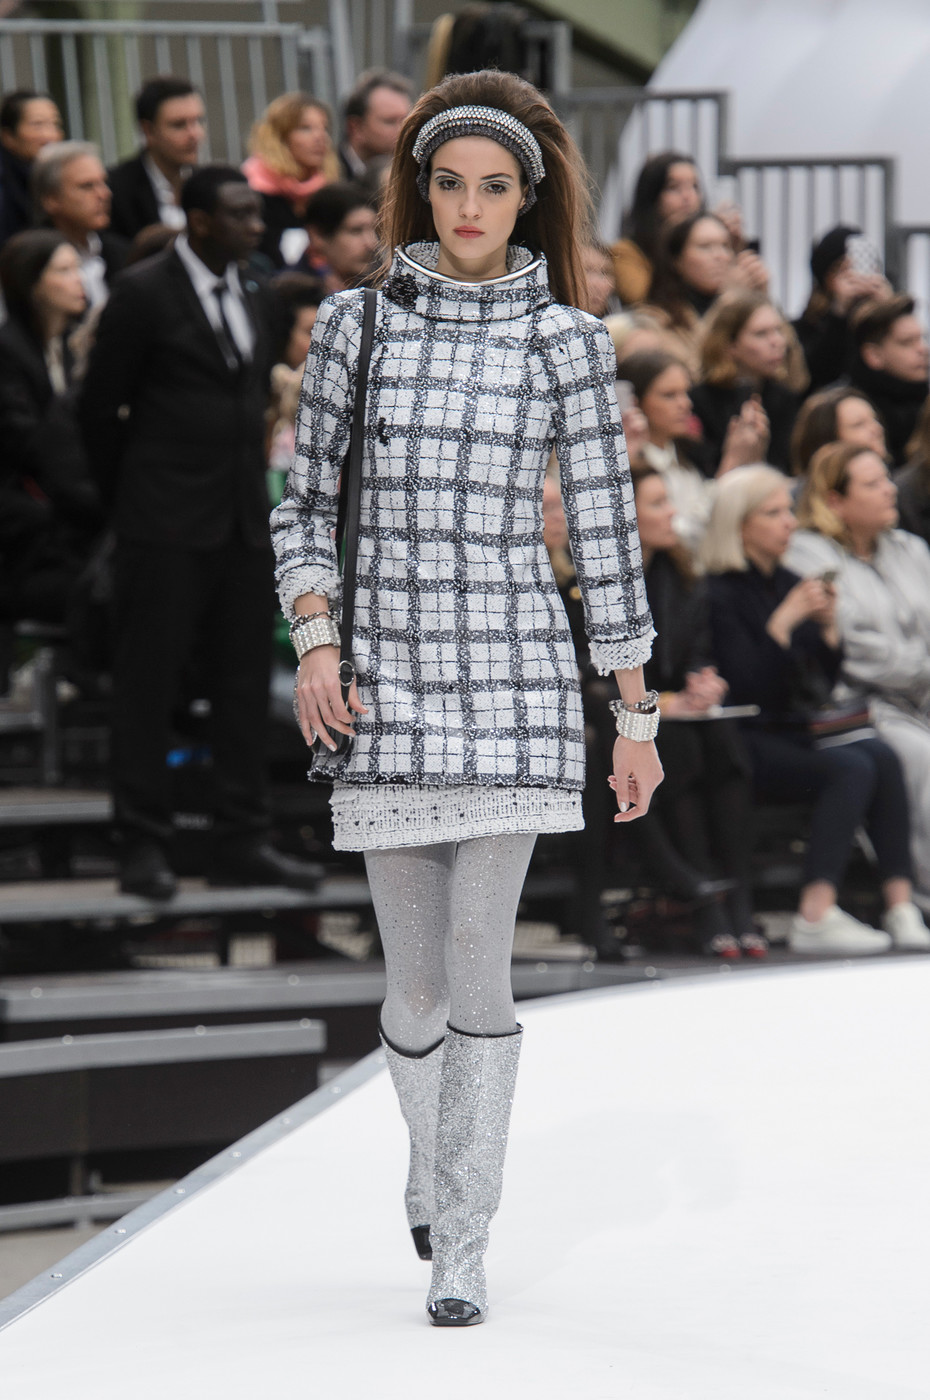 Chanel Fall 2017 Runway Pictures Livingly